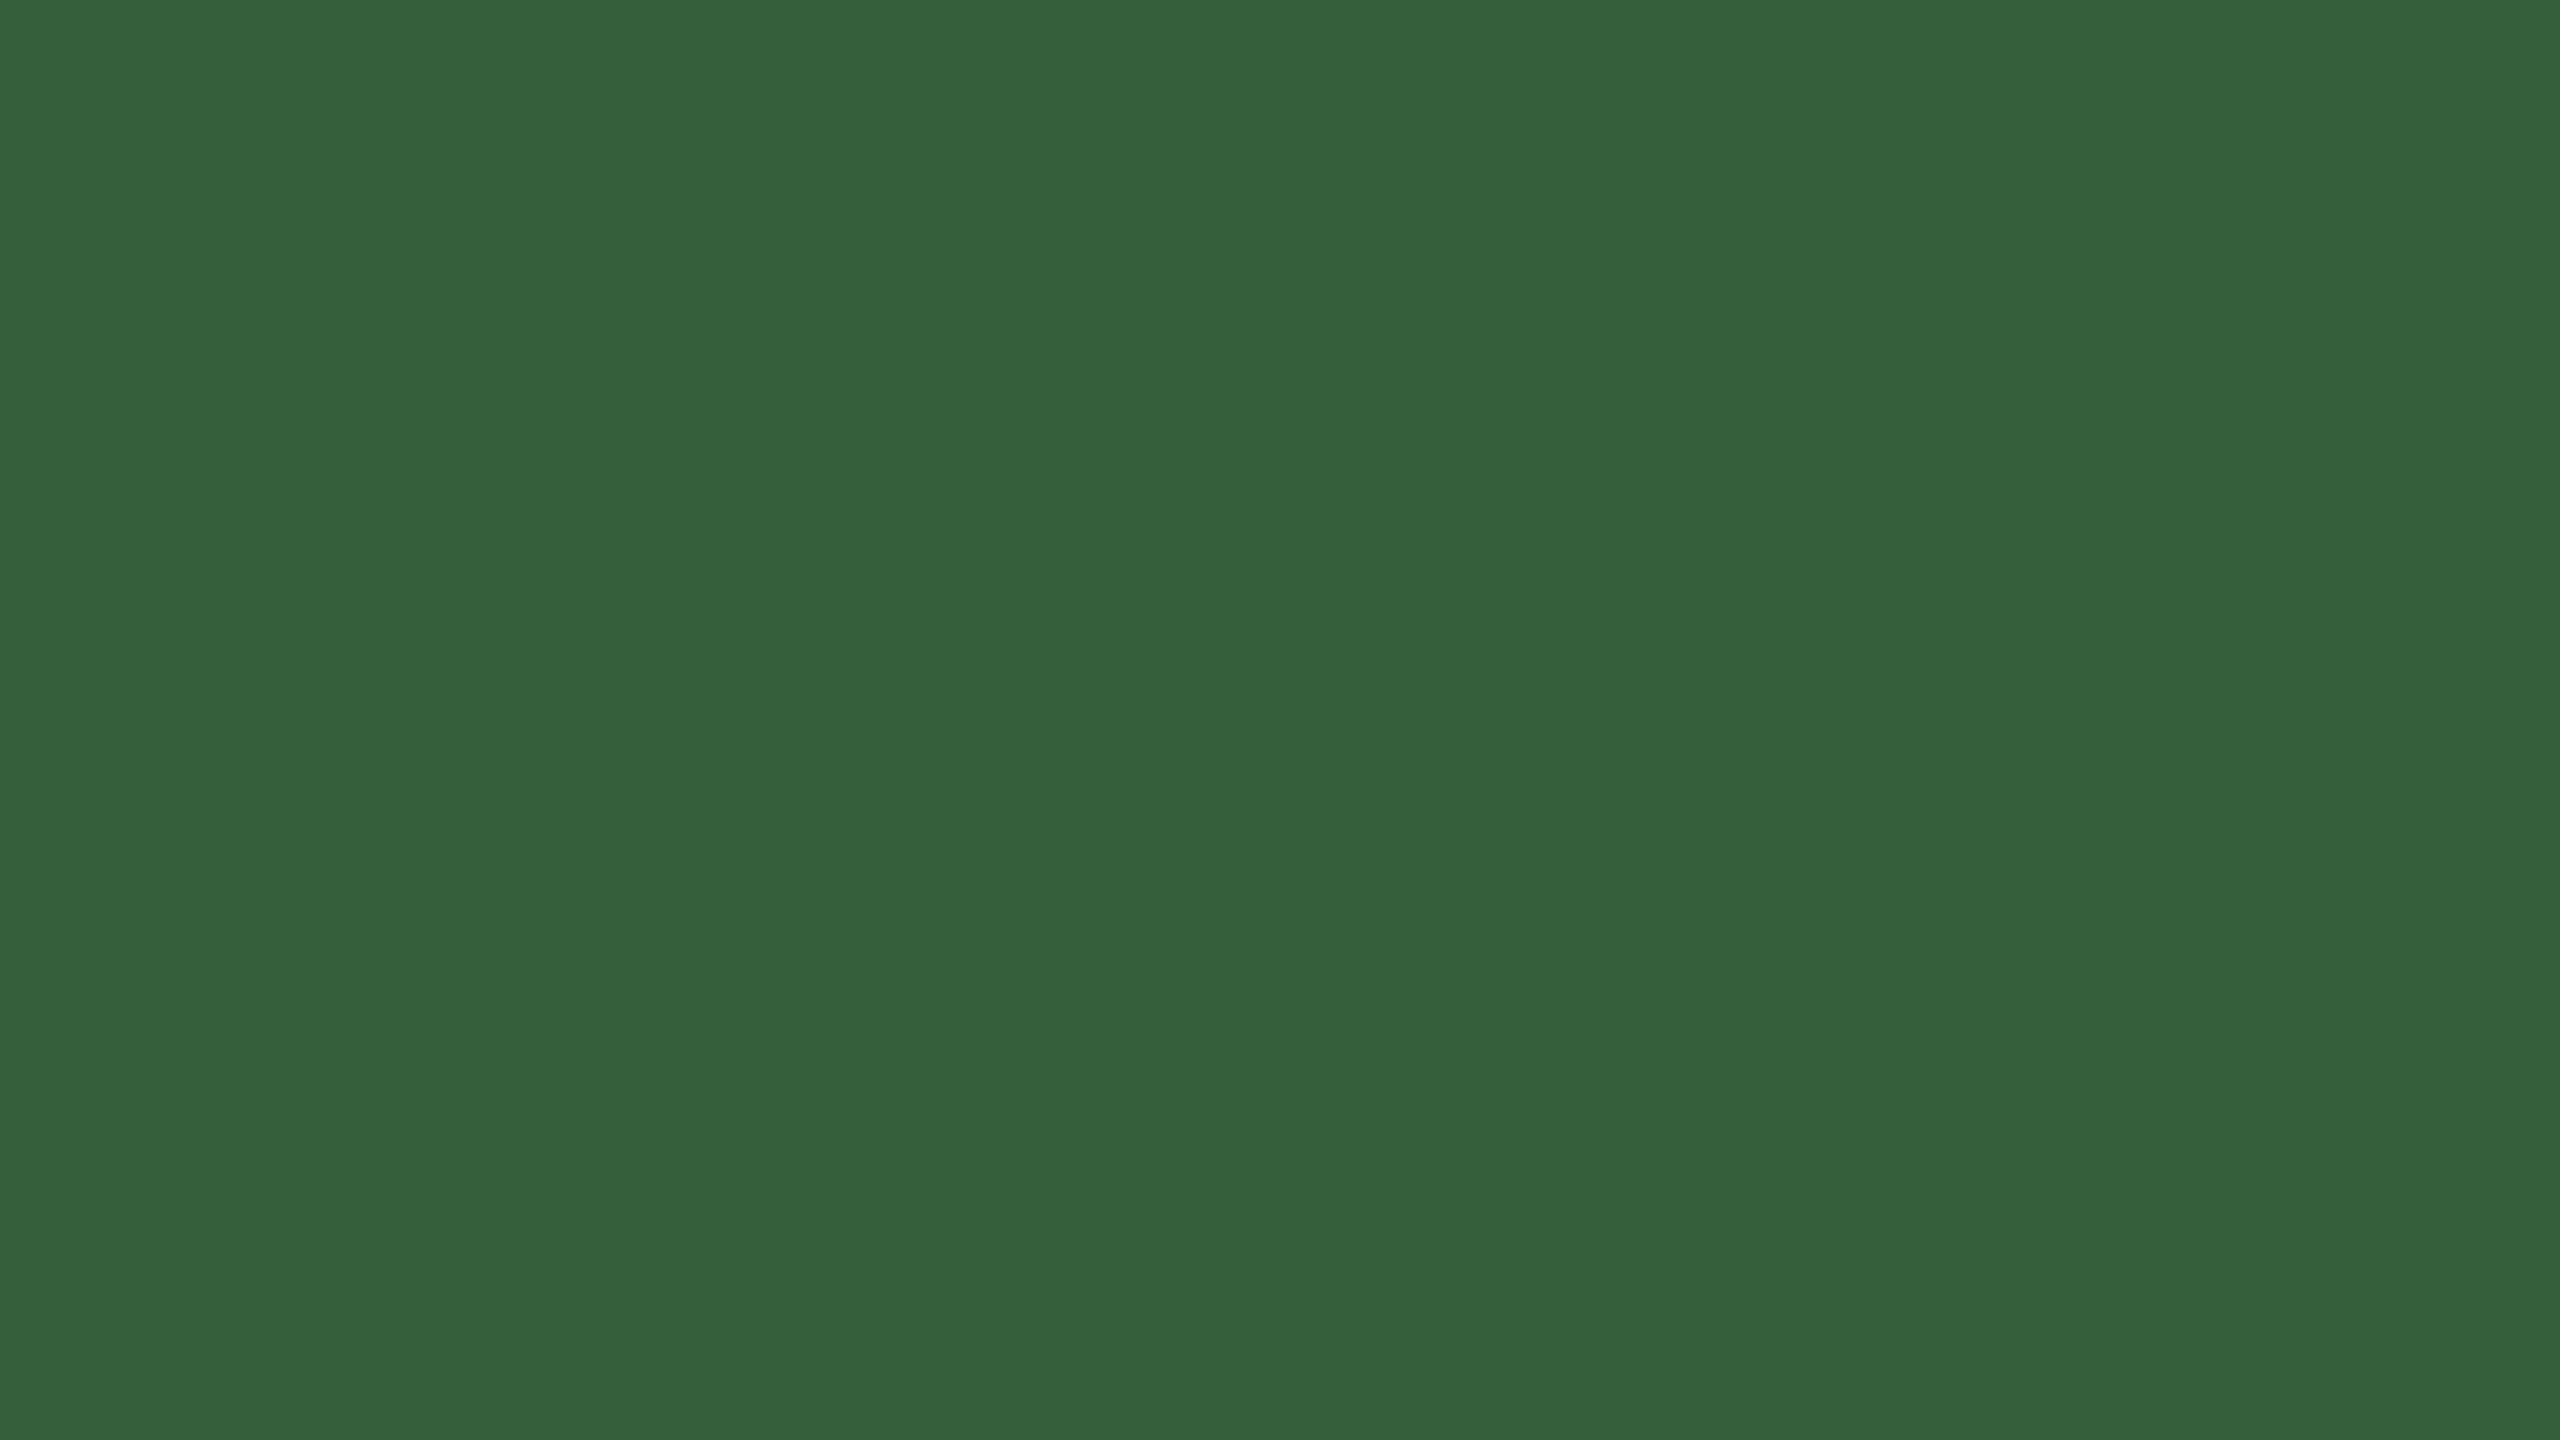 2560x1440 Hunter Green Solid Color Background